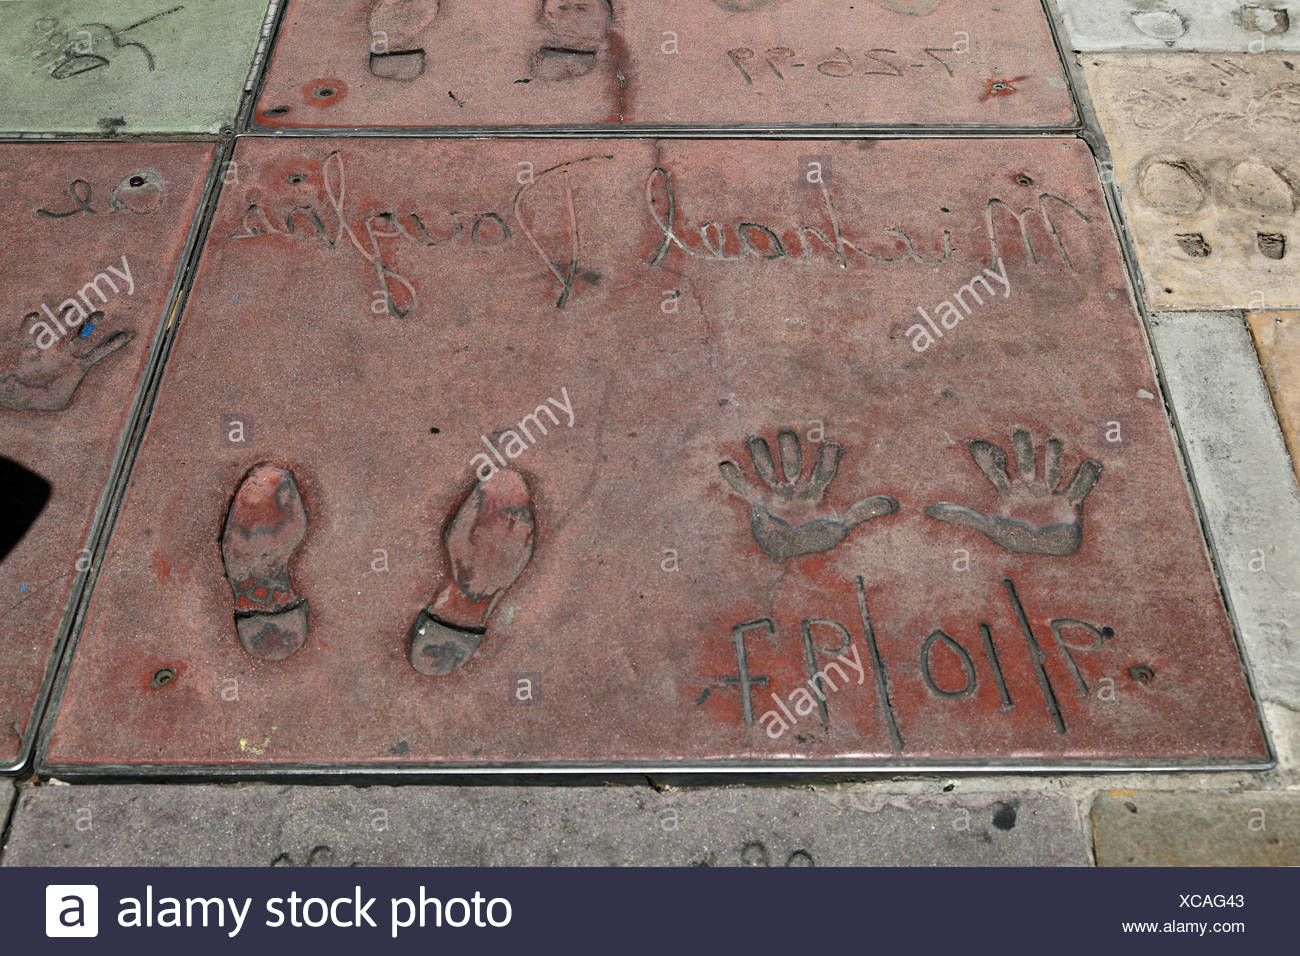 Douglas, Michael, * 25.9.1944, US actor, hand- and footprints, Grauman's Chinese Theater, Hollywood Blvd, Hollywood, Los Angeles, California, USA, Additional-Rights-Clearances-NA - Stock Image